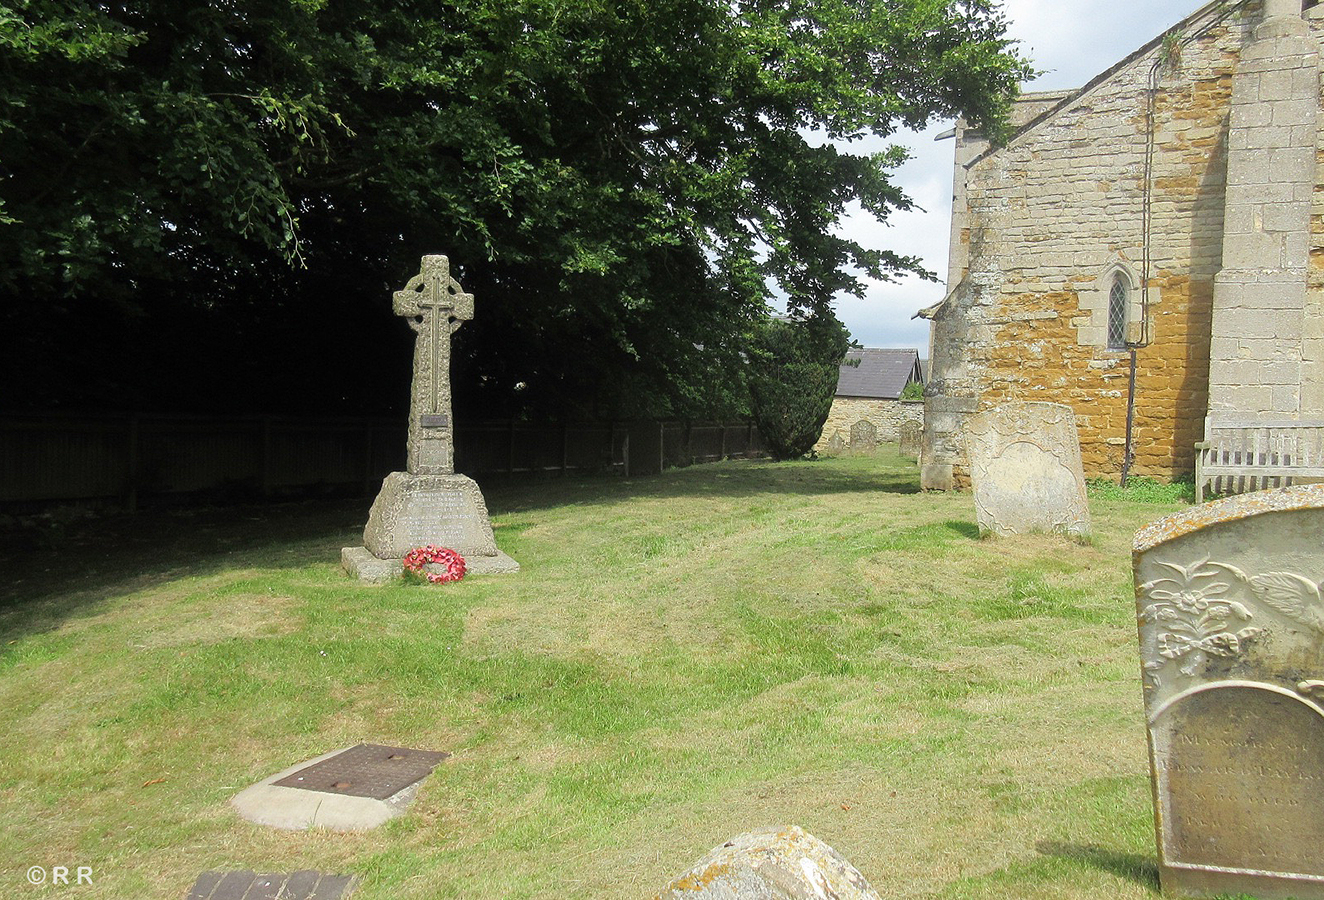 Manton War Memorial (St Mary the Virgin Church)